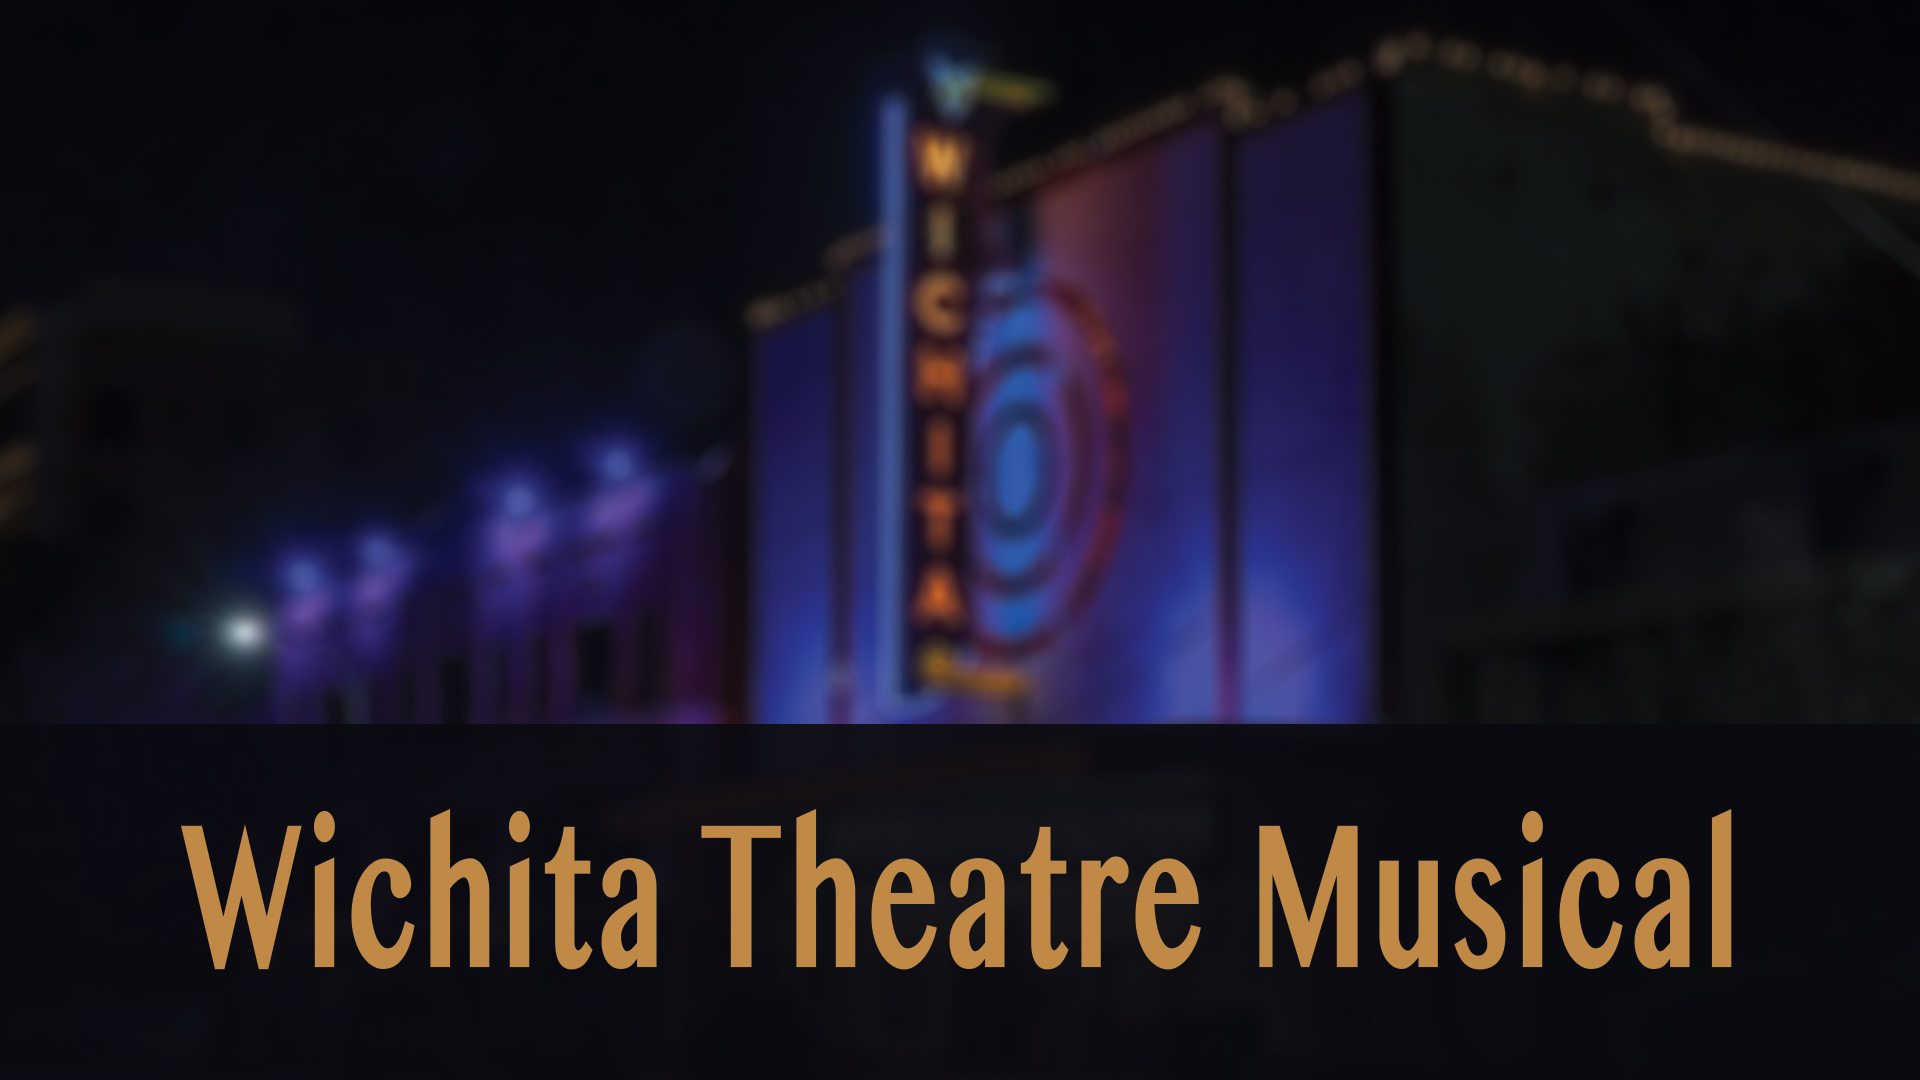 Wichita theatre